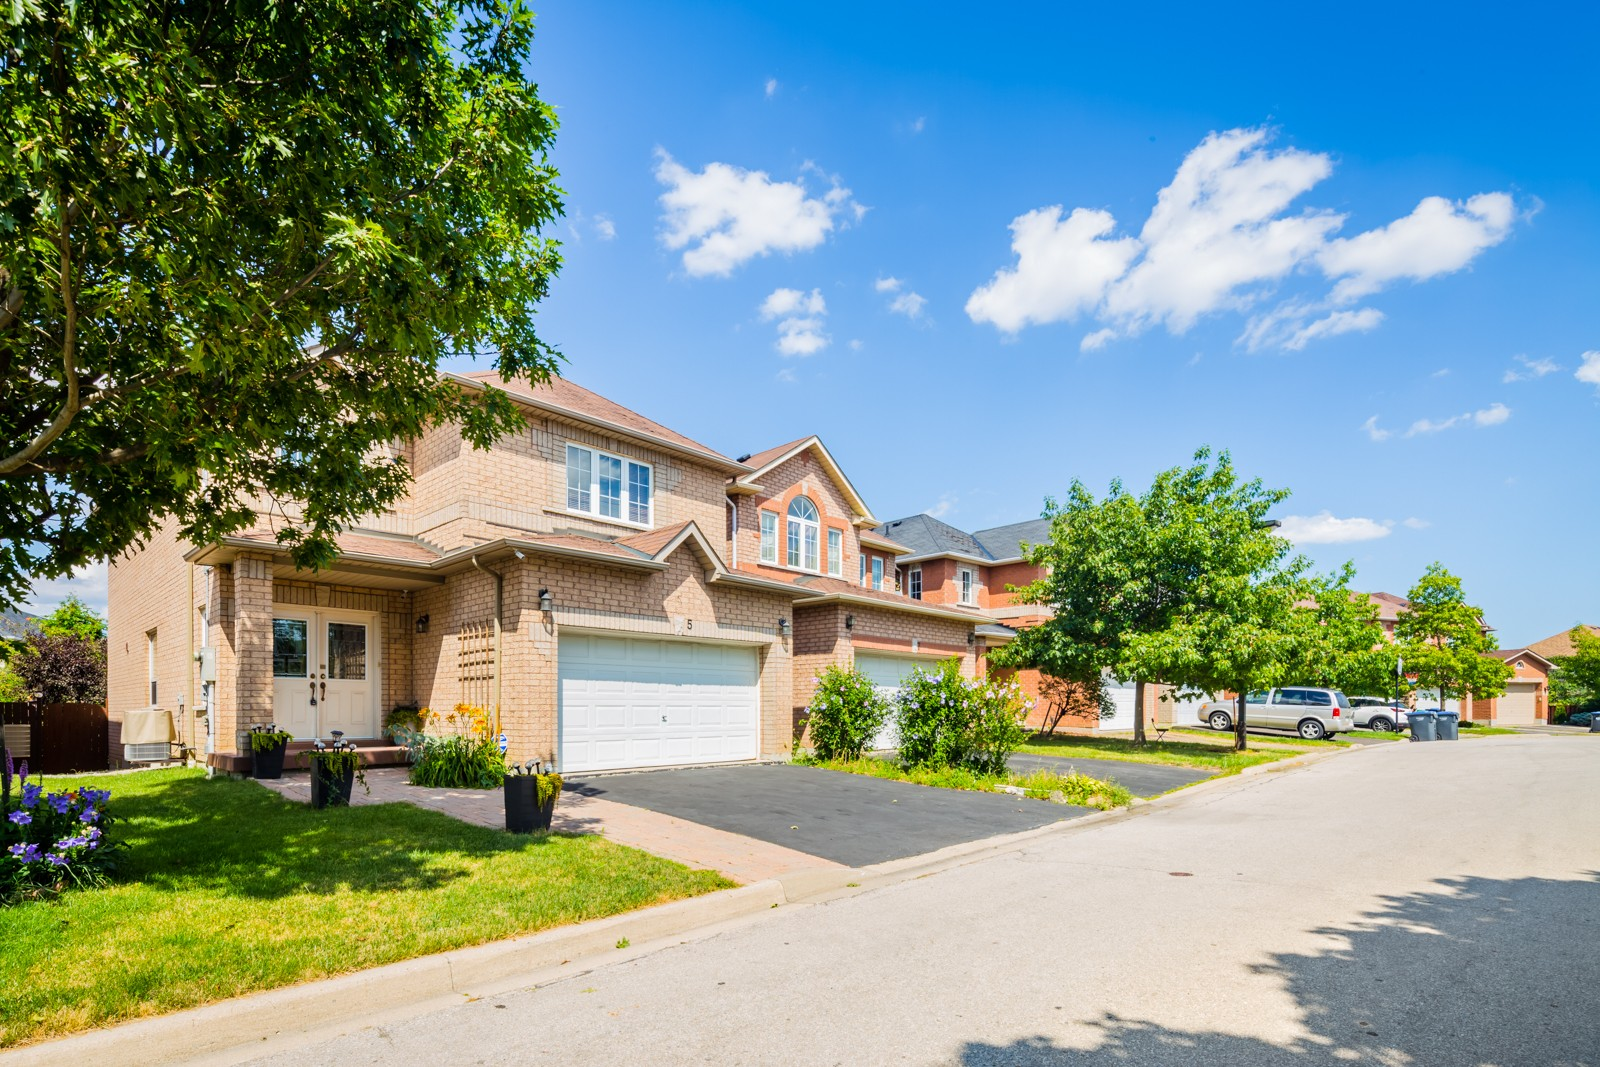 530 Driftcurrent Drive Townhouses at 530 Driftcurrent Dr, Mississauga 0